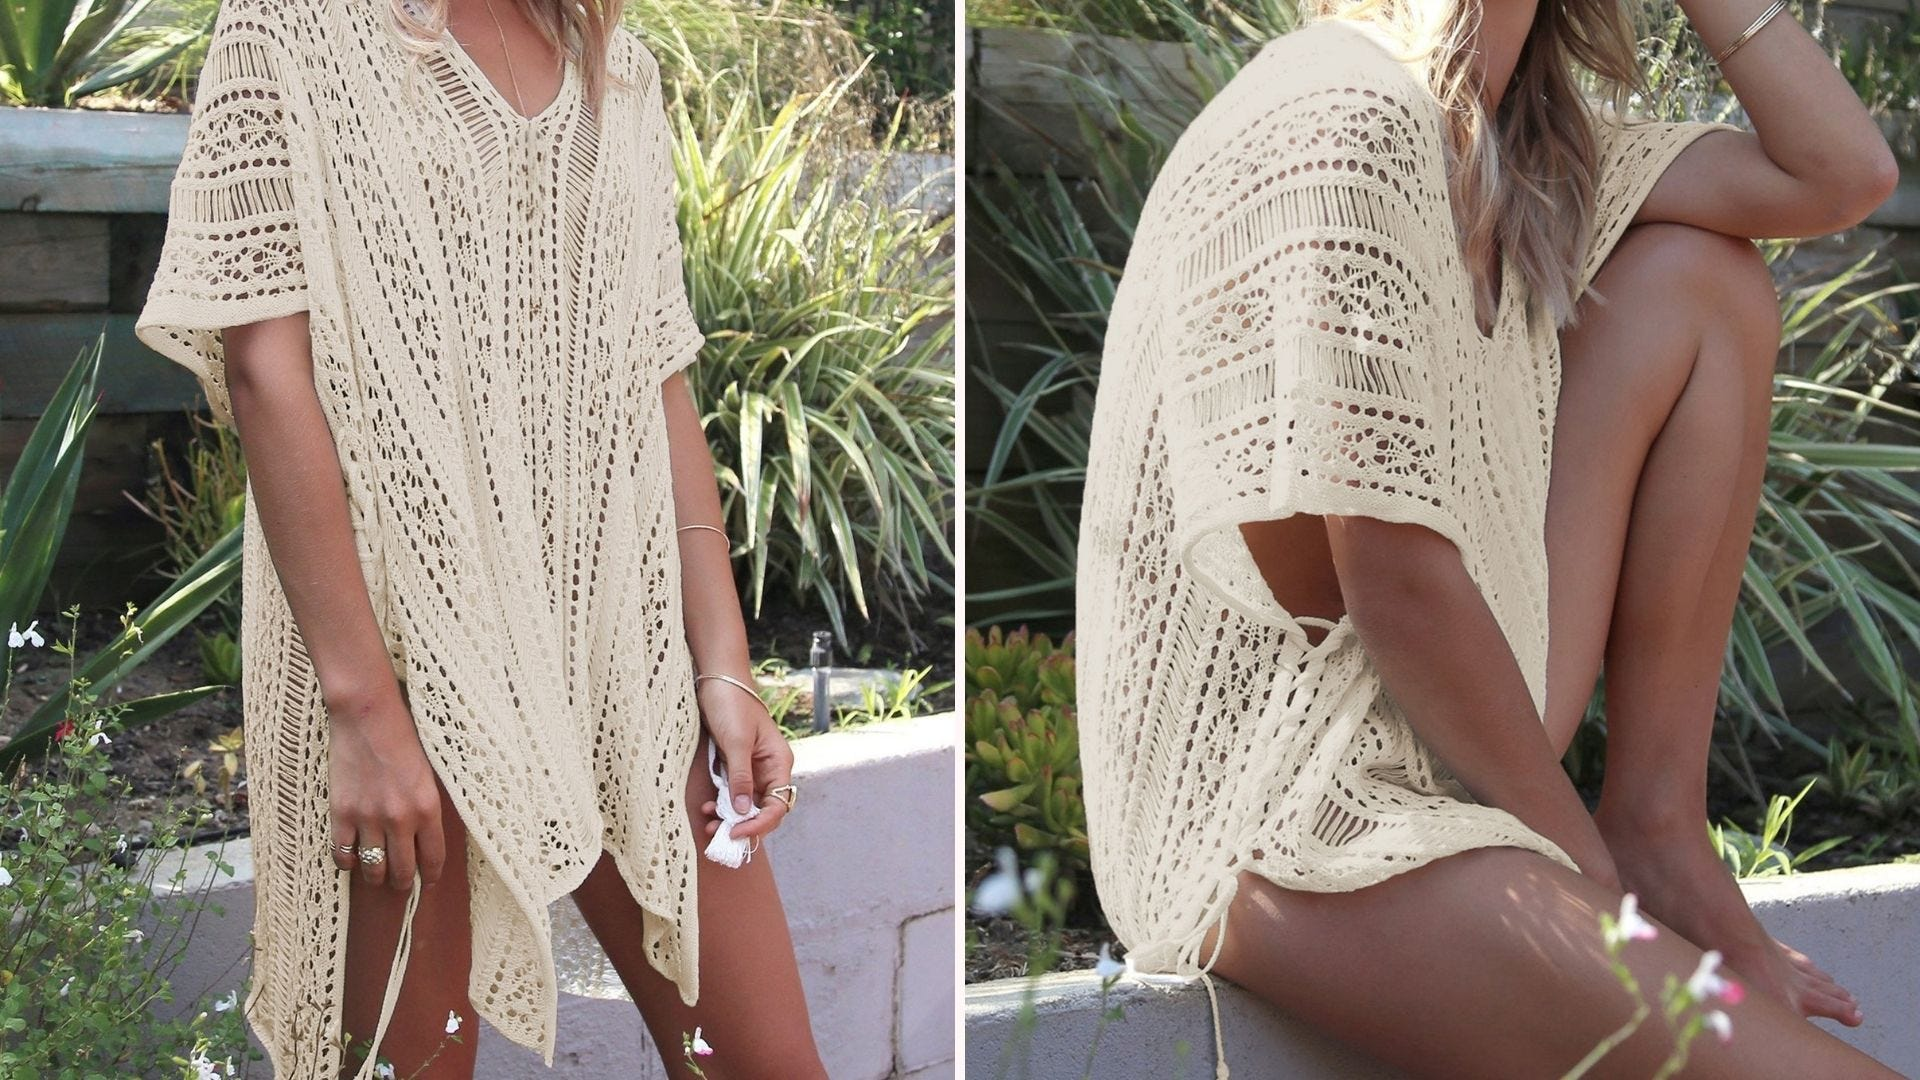 A woman wearing a crocheted ivory beach coverup; one image standing, one sitting